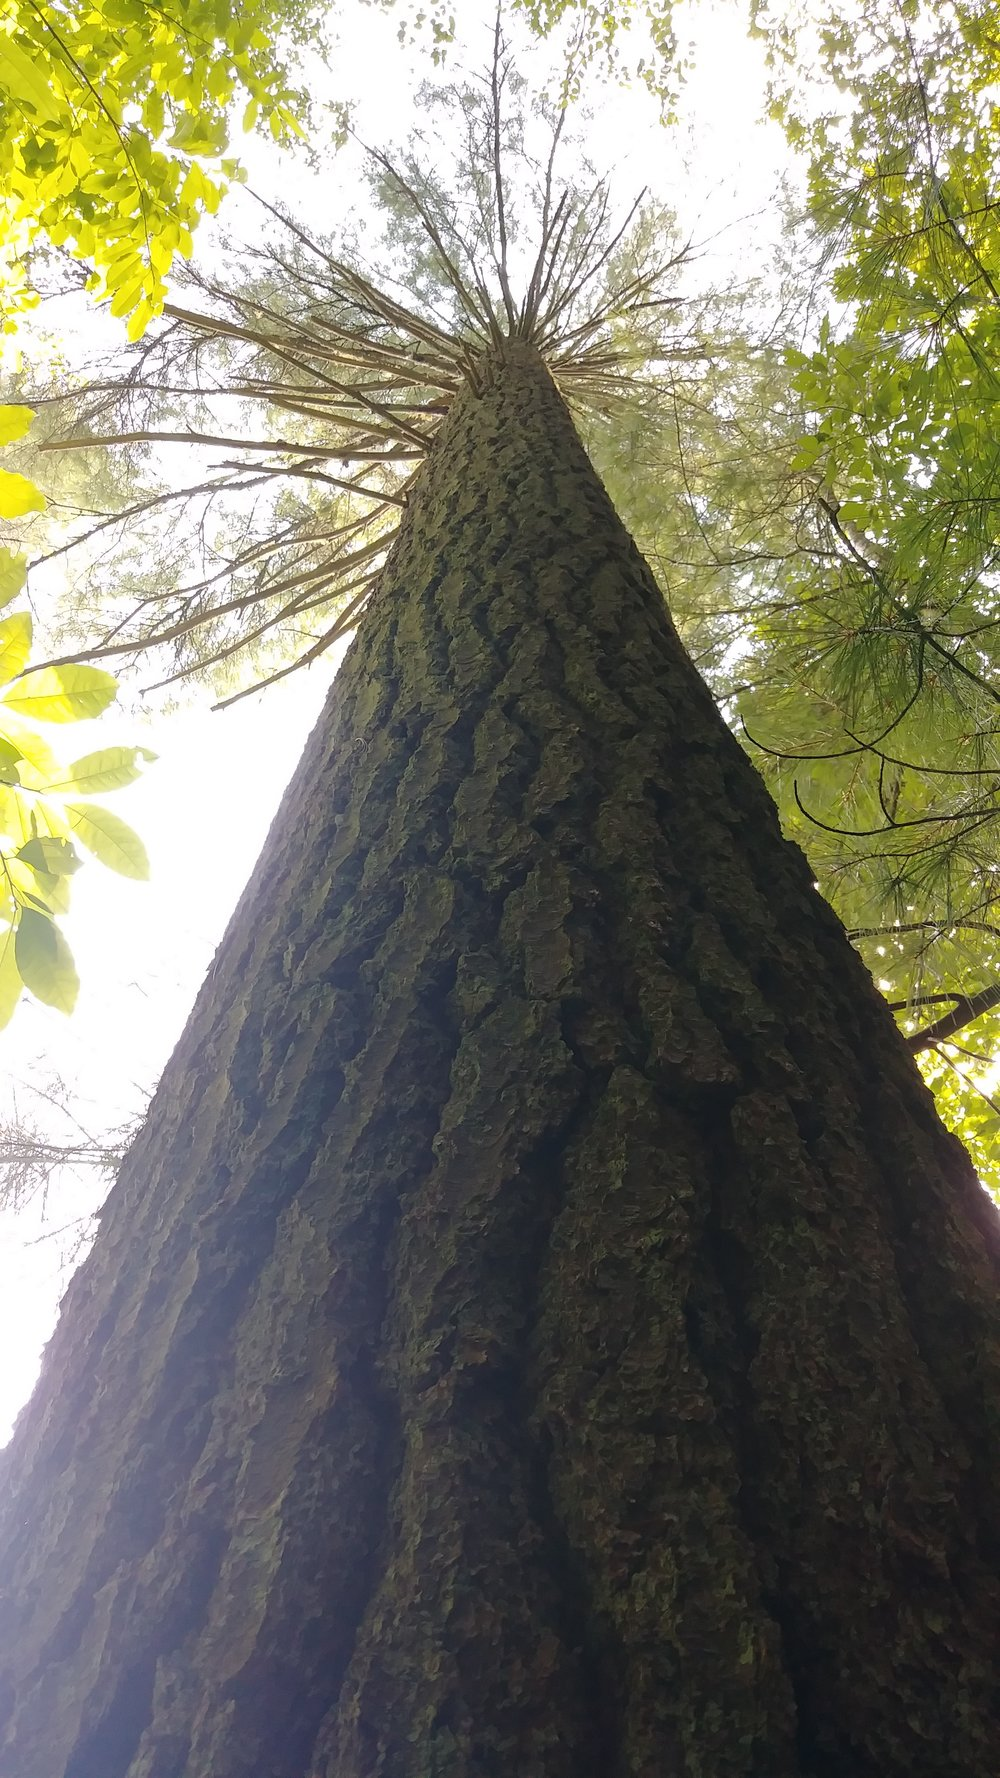 A big pine on Swift Camp Creek Trail in the Clifty Wilderness - where plenty of old trees reside